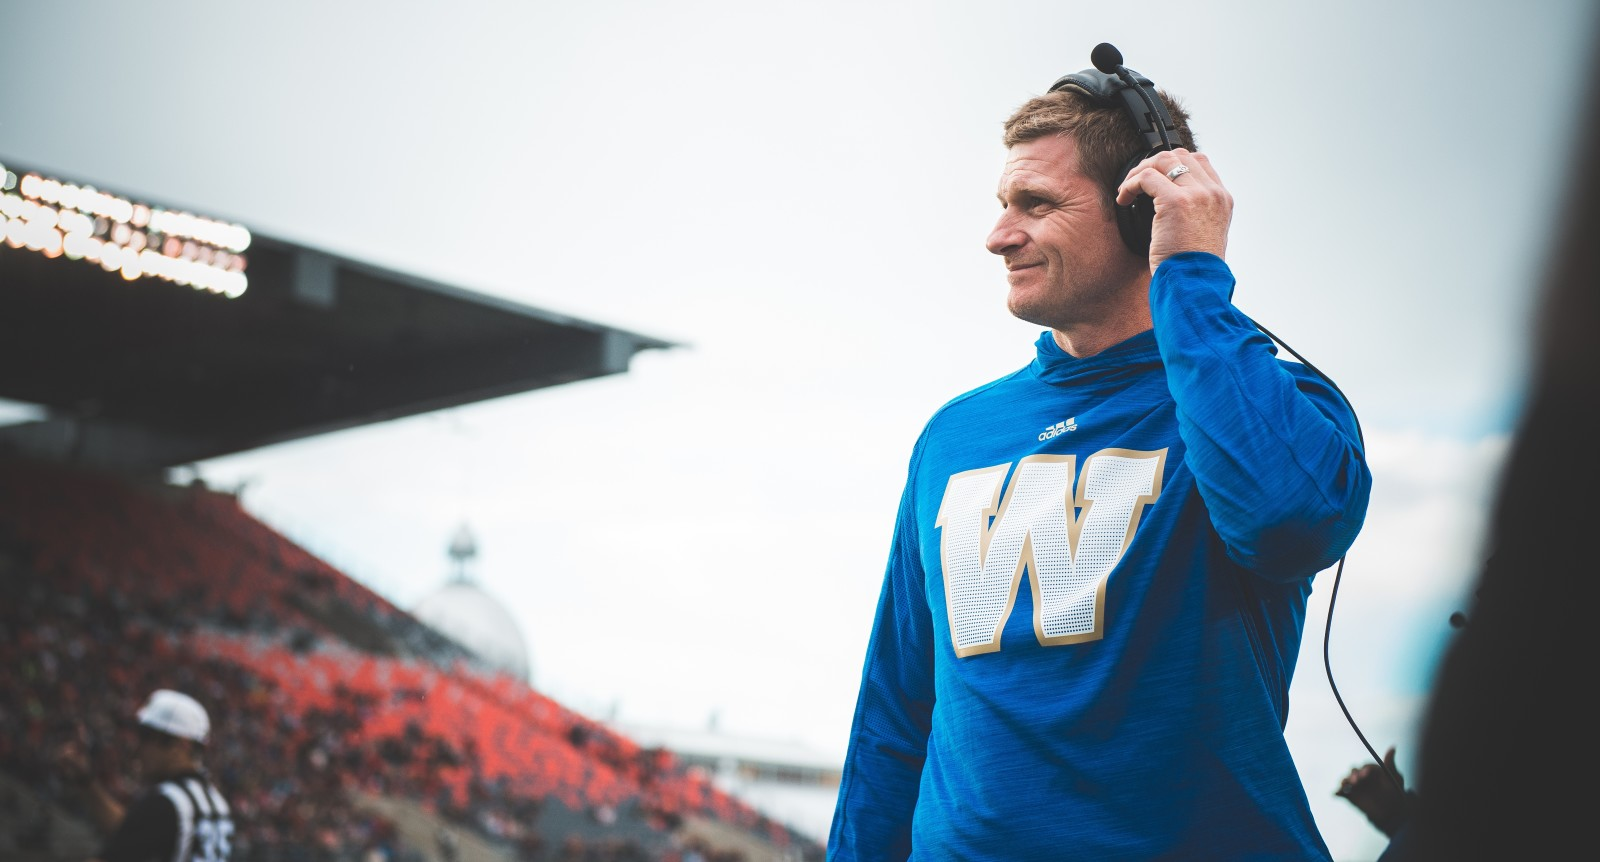 Winnipeg Blue Bombers head coach Mike O'Shea during the pre-season game at TD Place in Ottawa, ON on Monday June 13, 2016. (Photo: Johany Jutras)